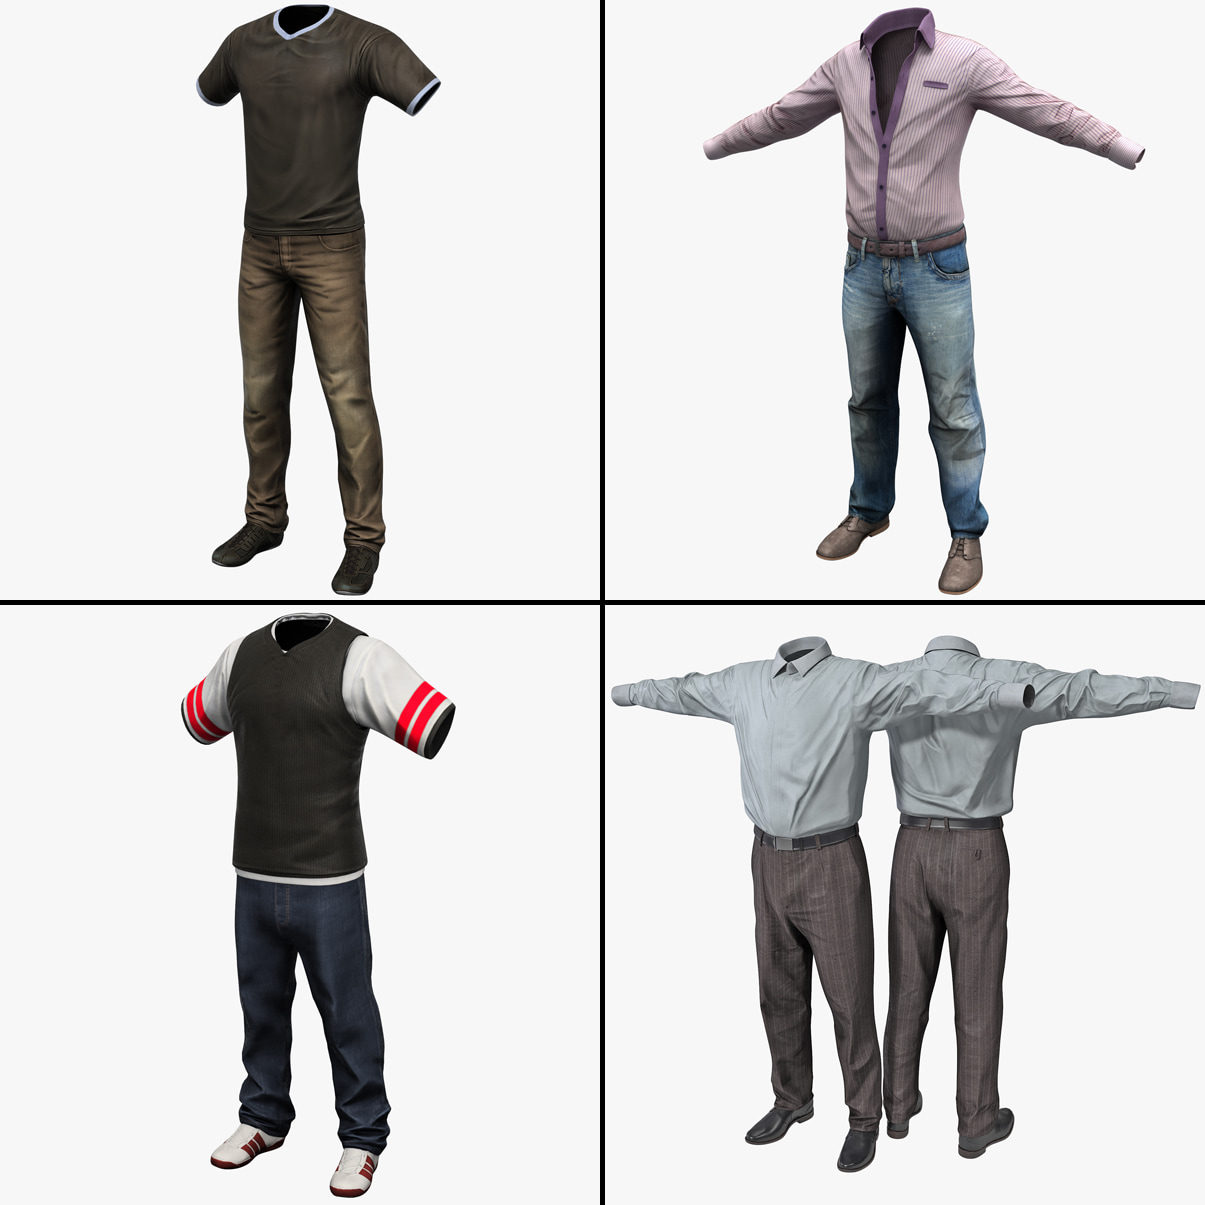 Mens Clothing Collection.jpg